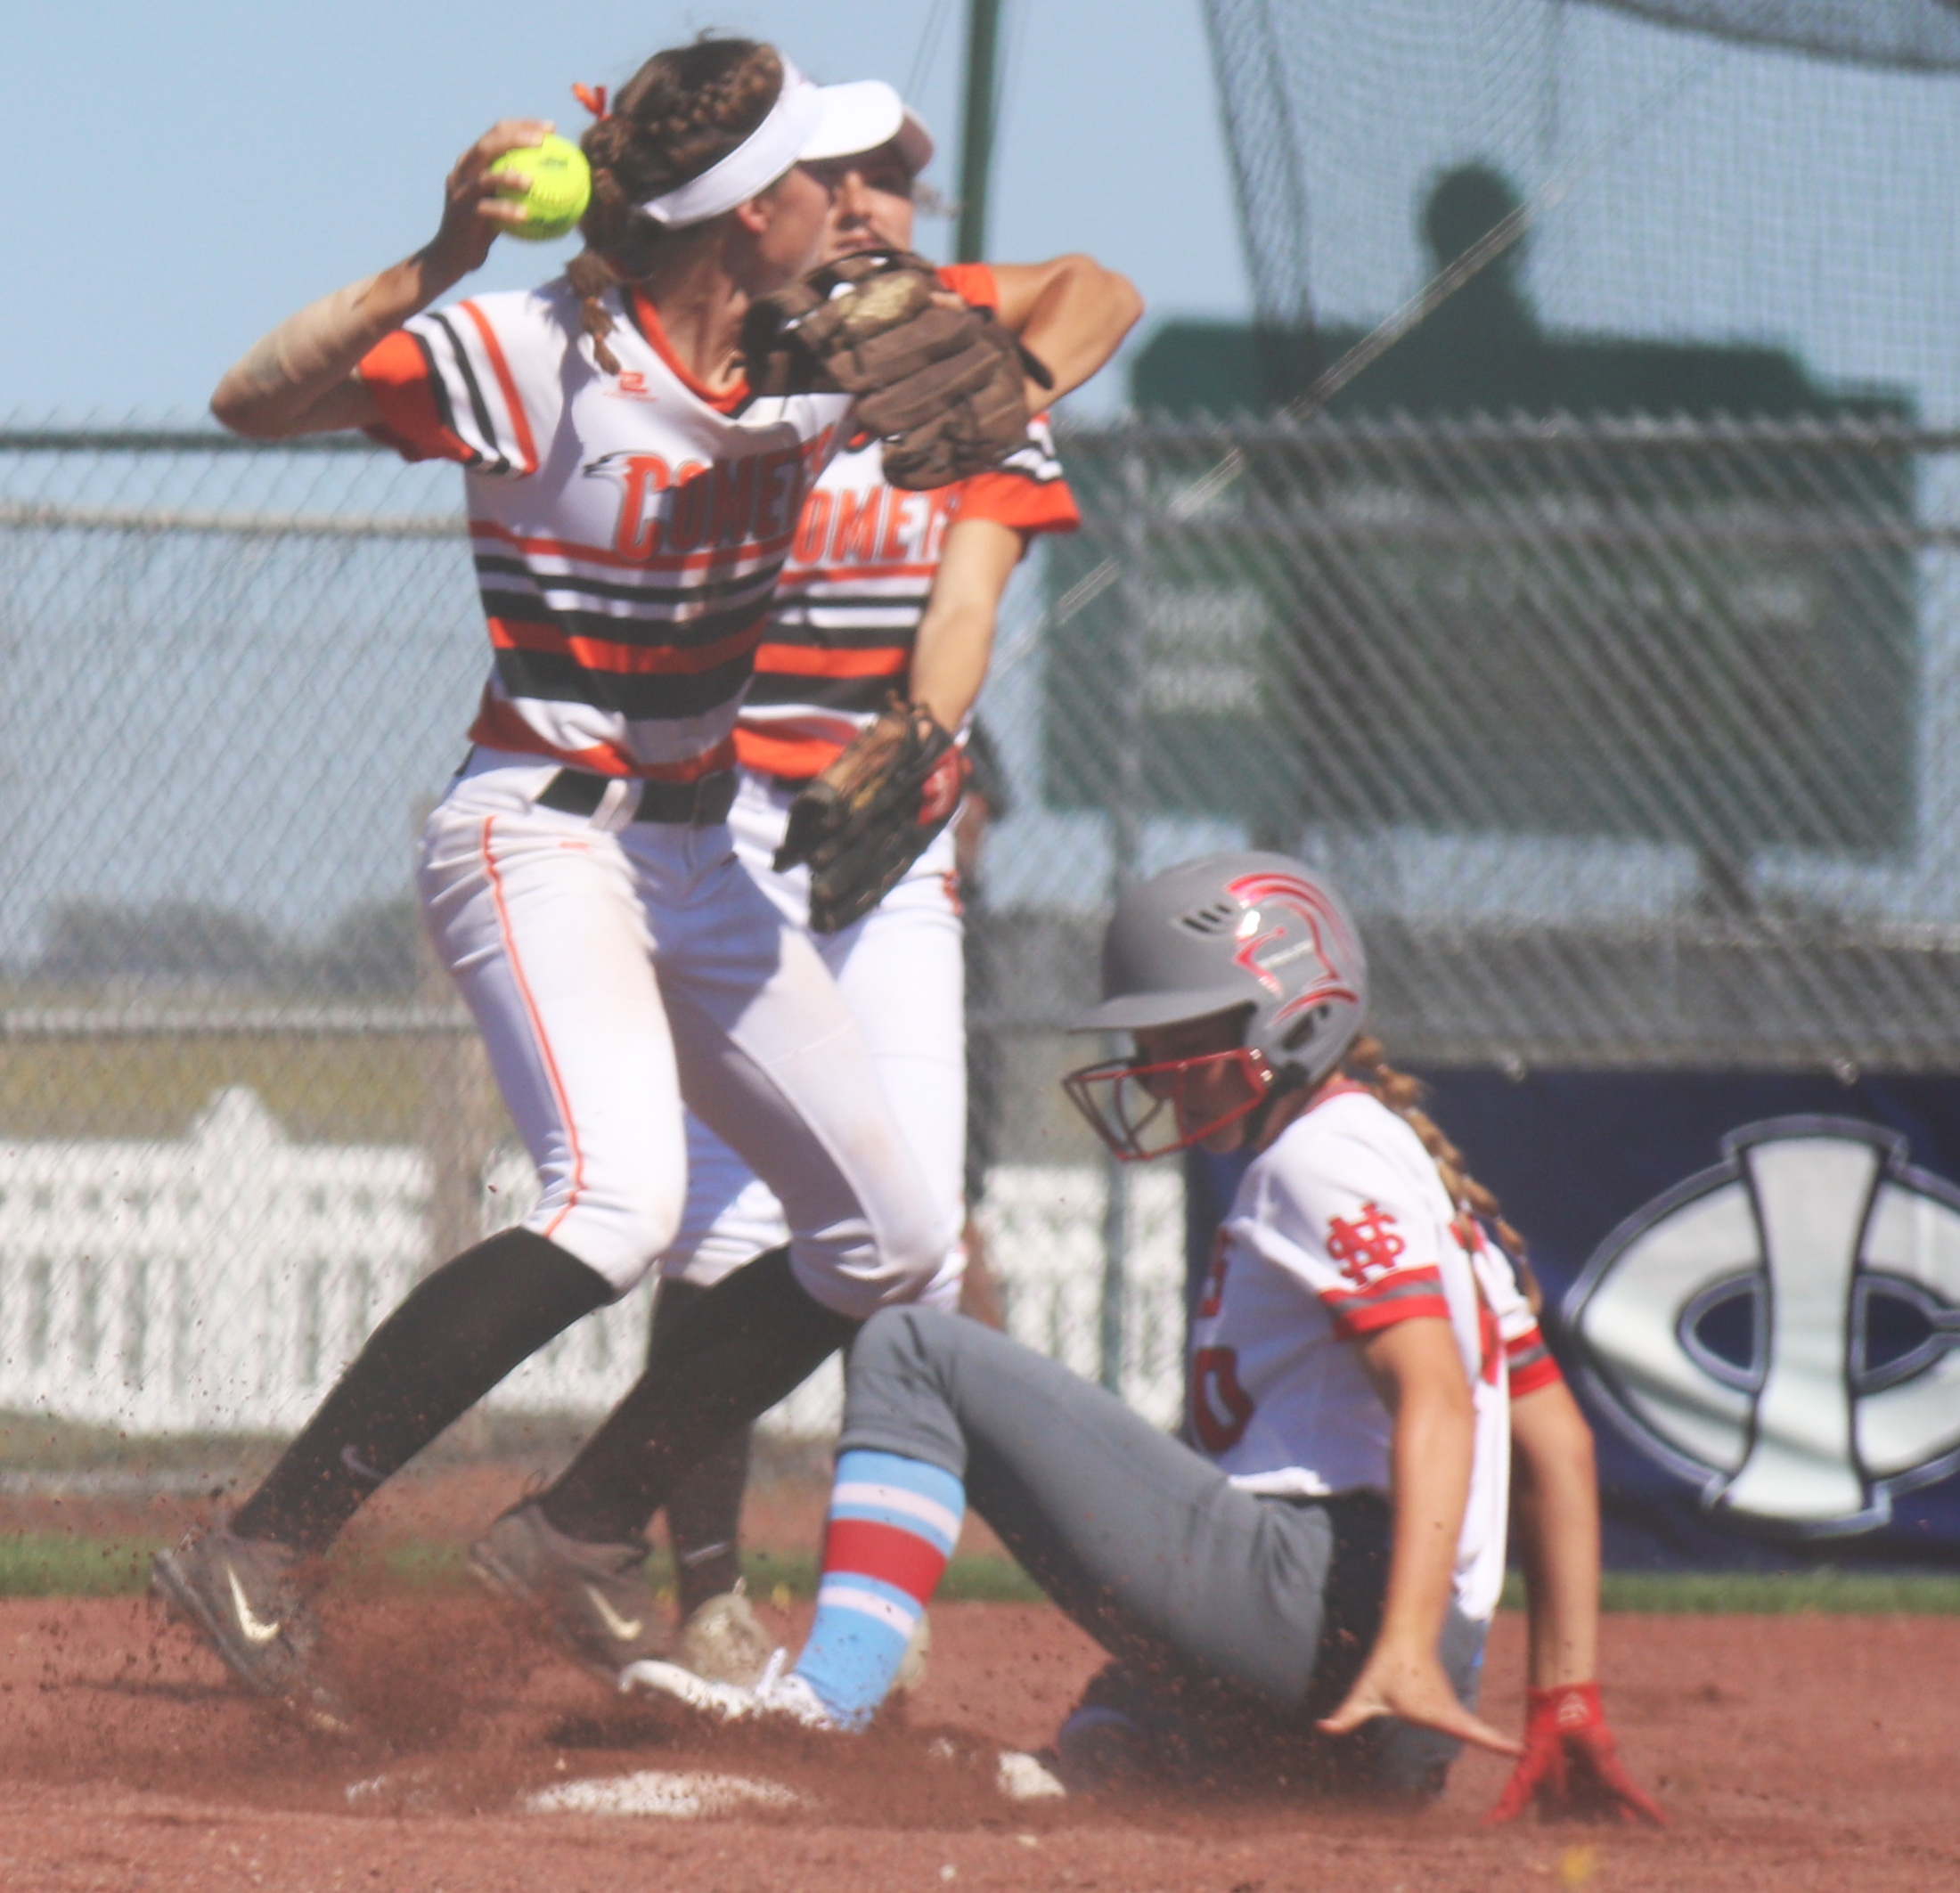 Lancers defeat Comets 11-0 in Class 4A State Softball quarterfinals